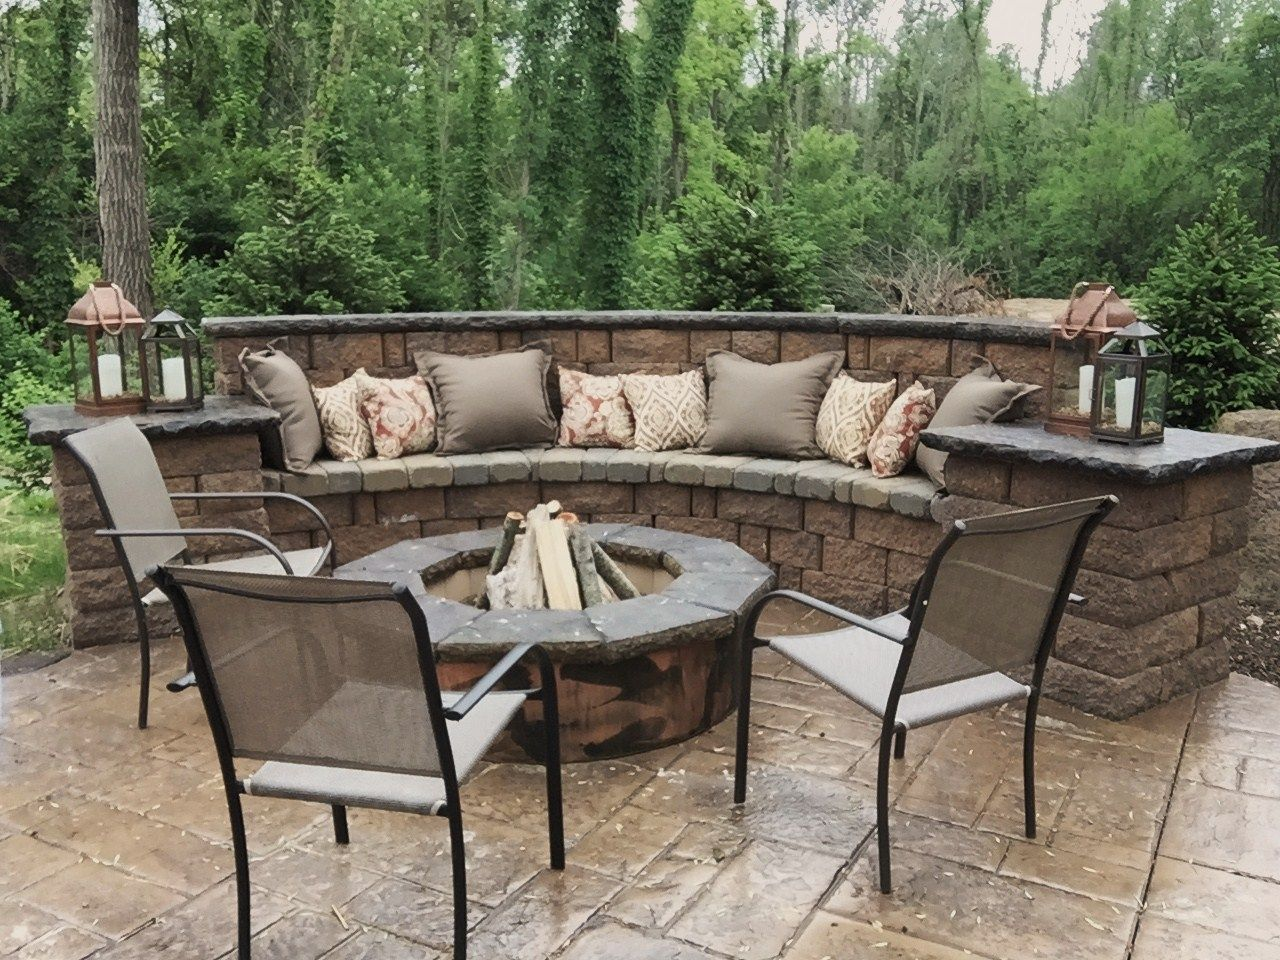 seating wall fire pit and stamped concrete patio outdoor oasis pinterest jardin balcon. Black Bedroom Furniture Sets. Home Design Ideas